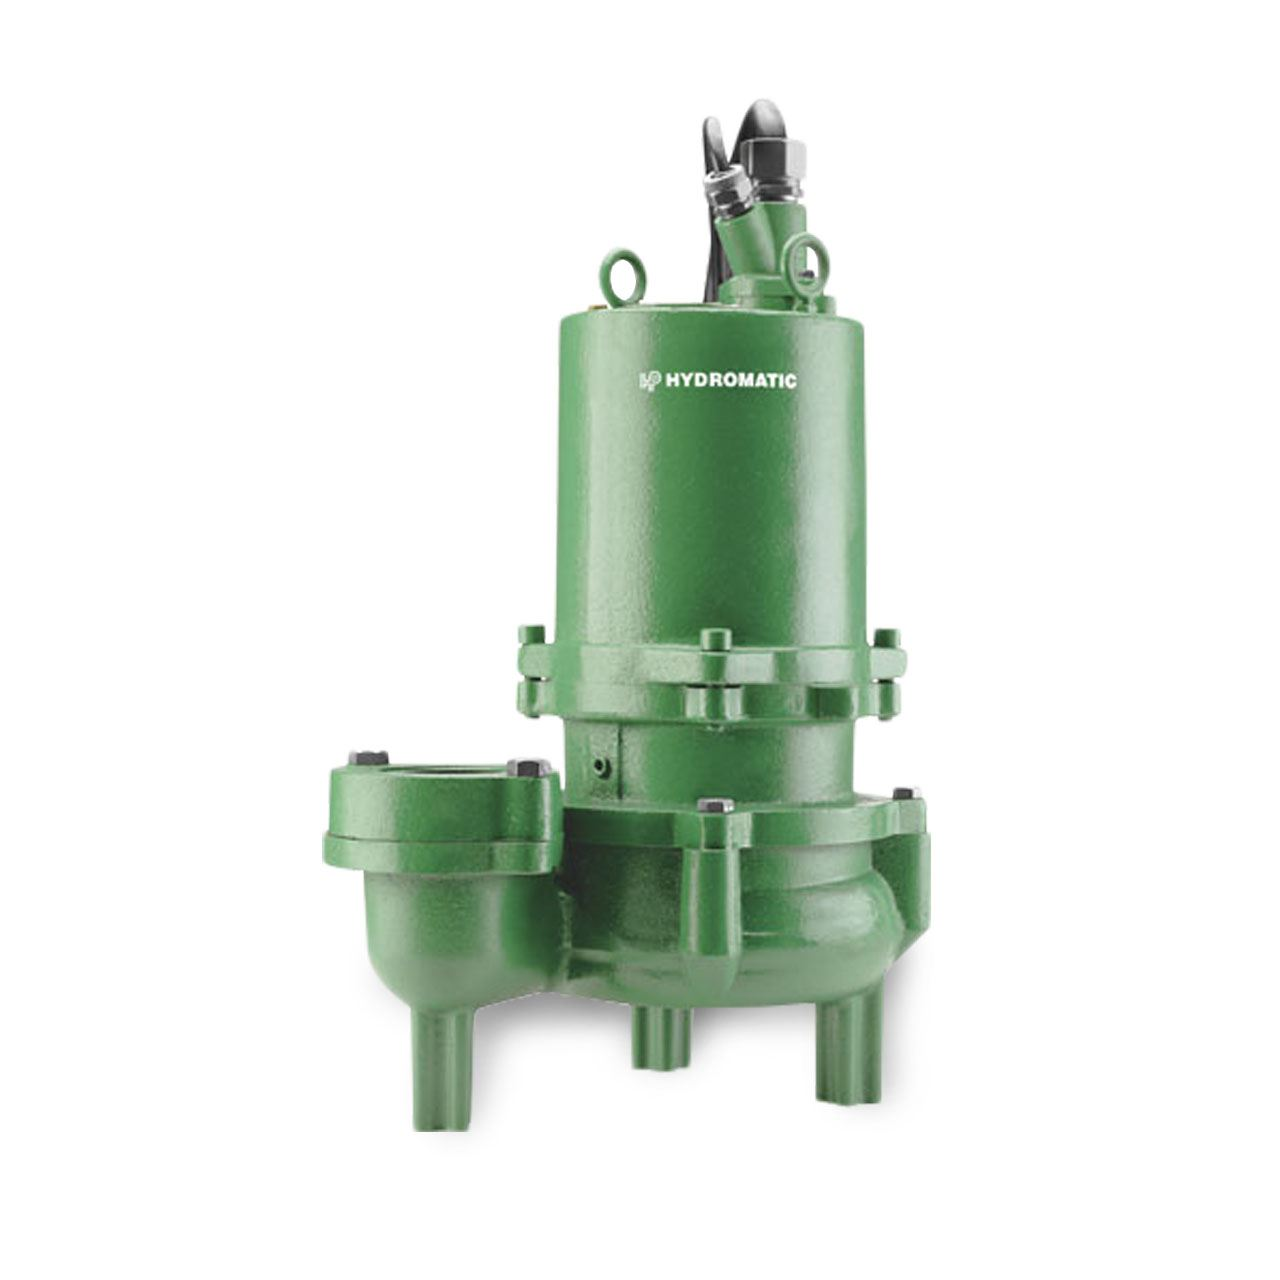 small resolution of hydromatic pump wiring diagram wiring diagram third level myers pump wiring diagram hydromatic pump hydromatic sb4sd500m2